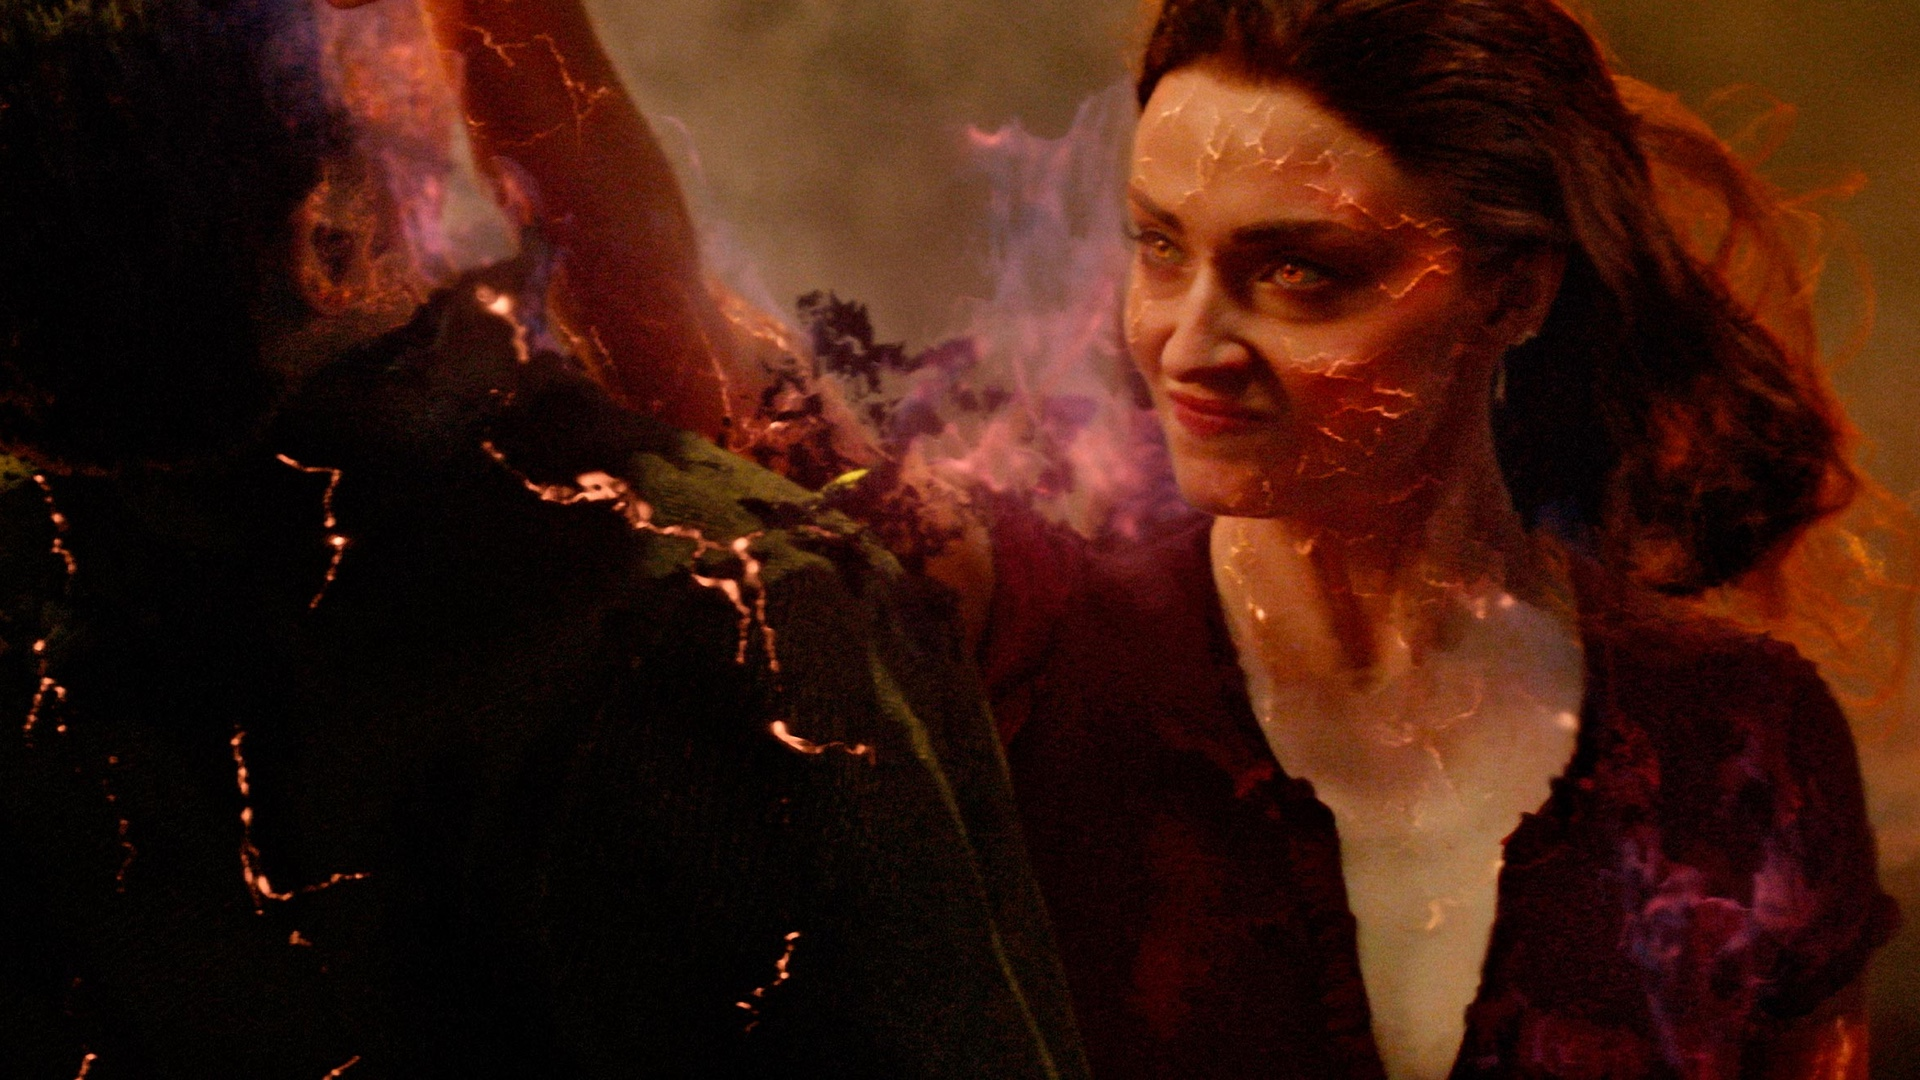 The Original Ending For X Men Dark Phoenix Is Compared To